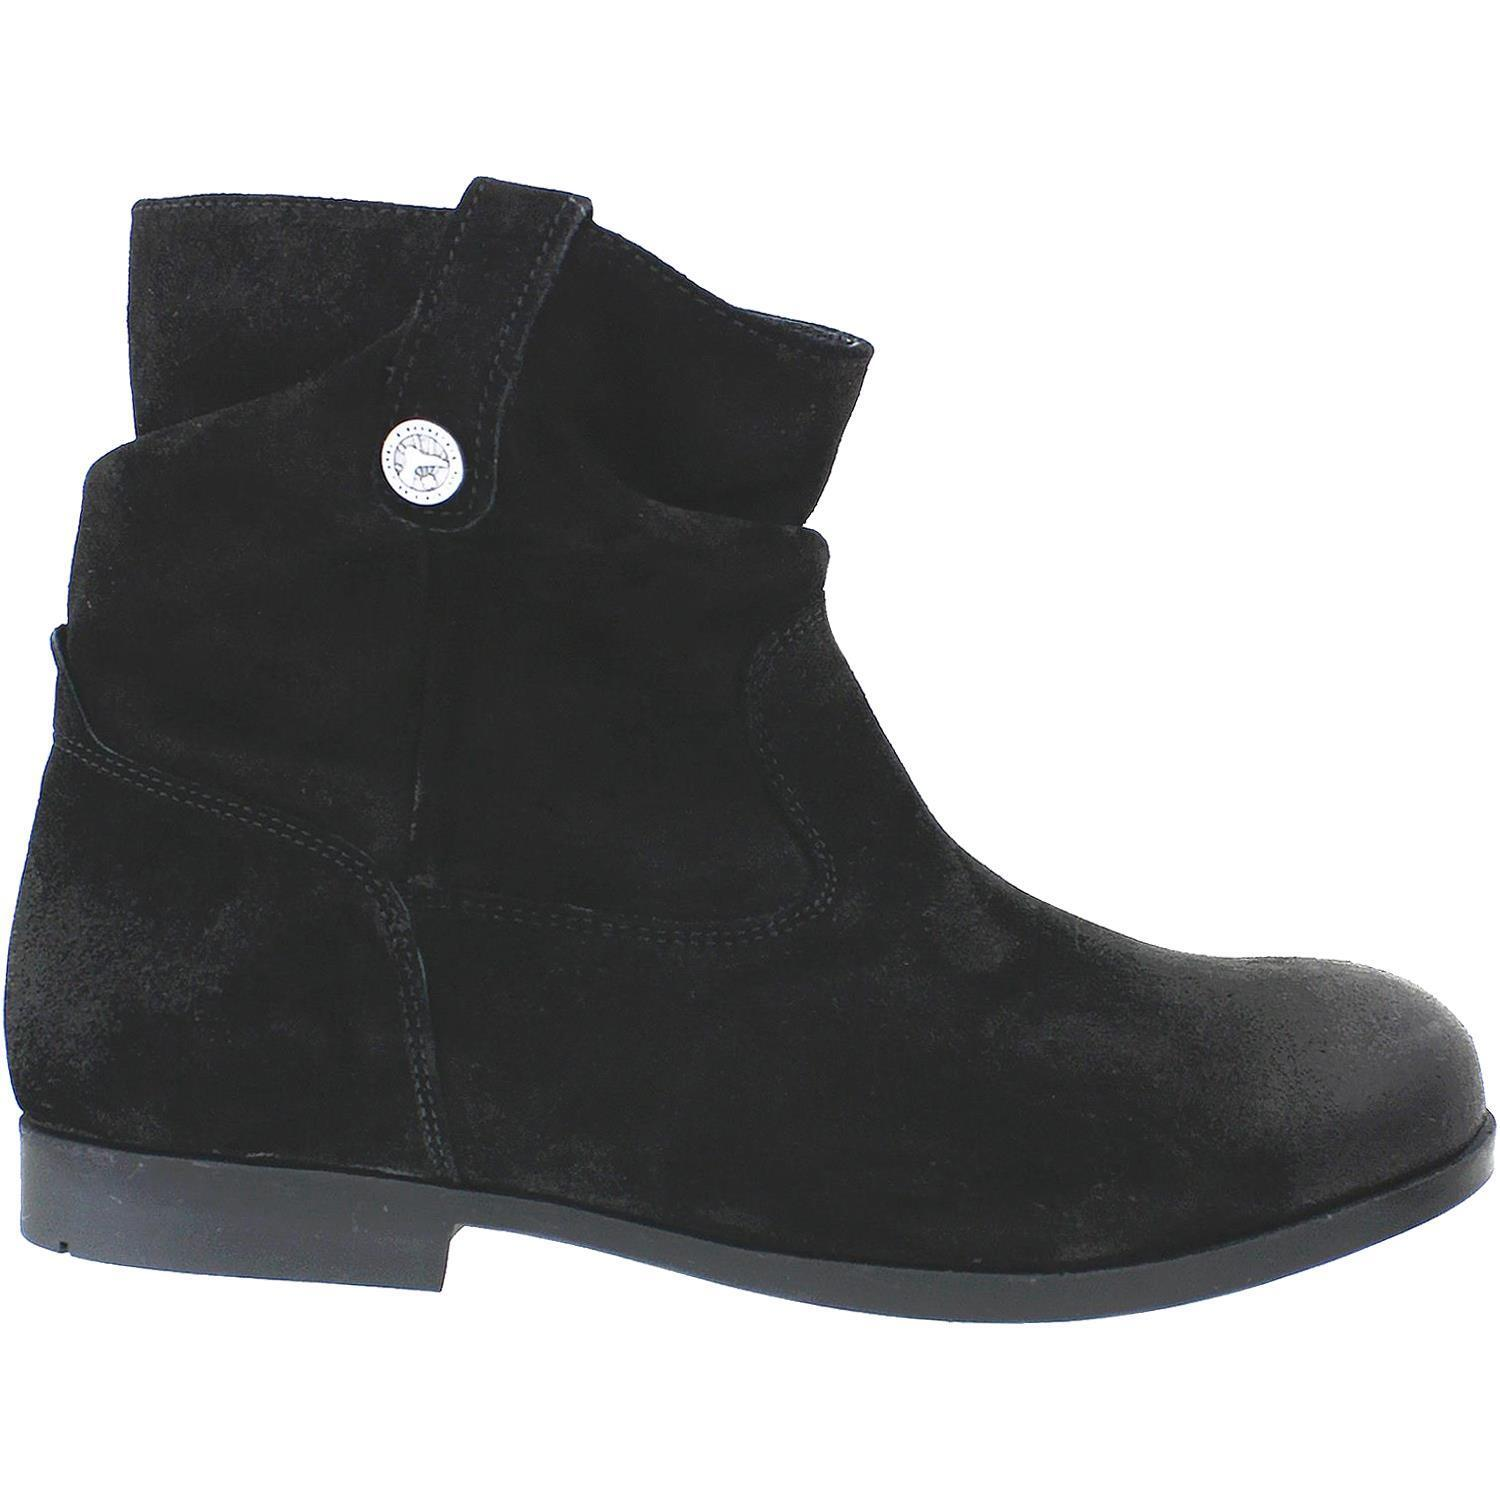 BIRKENSTOCK SARNIA WAXED SUEDE ANKLE BOOT BOOTIE BLACK 37 6 L 4 M (M2)